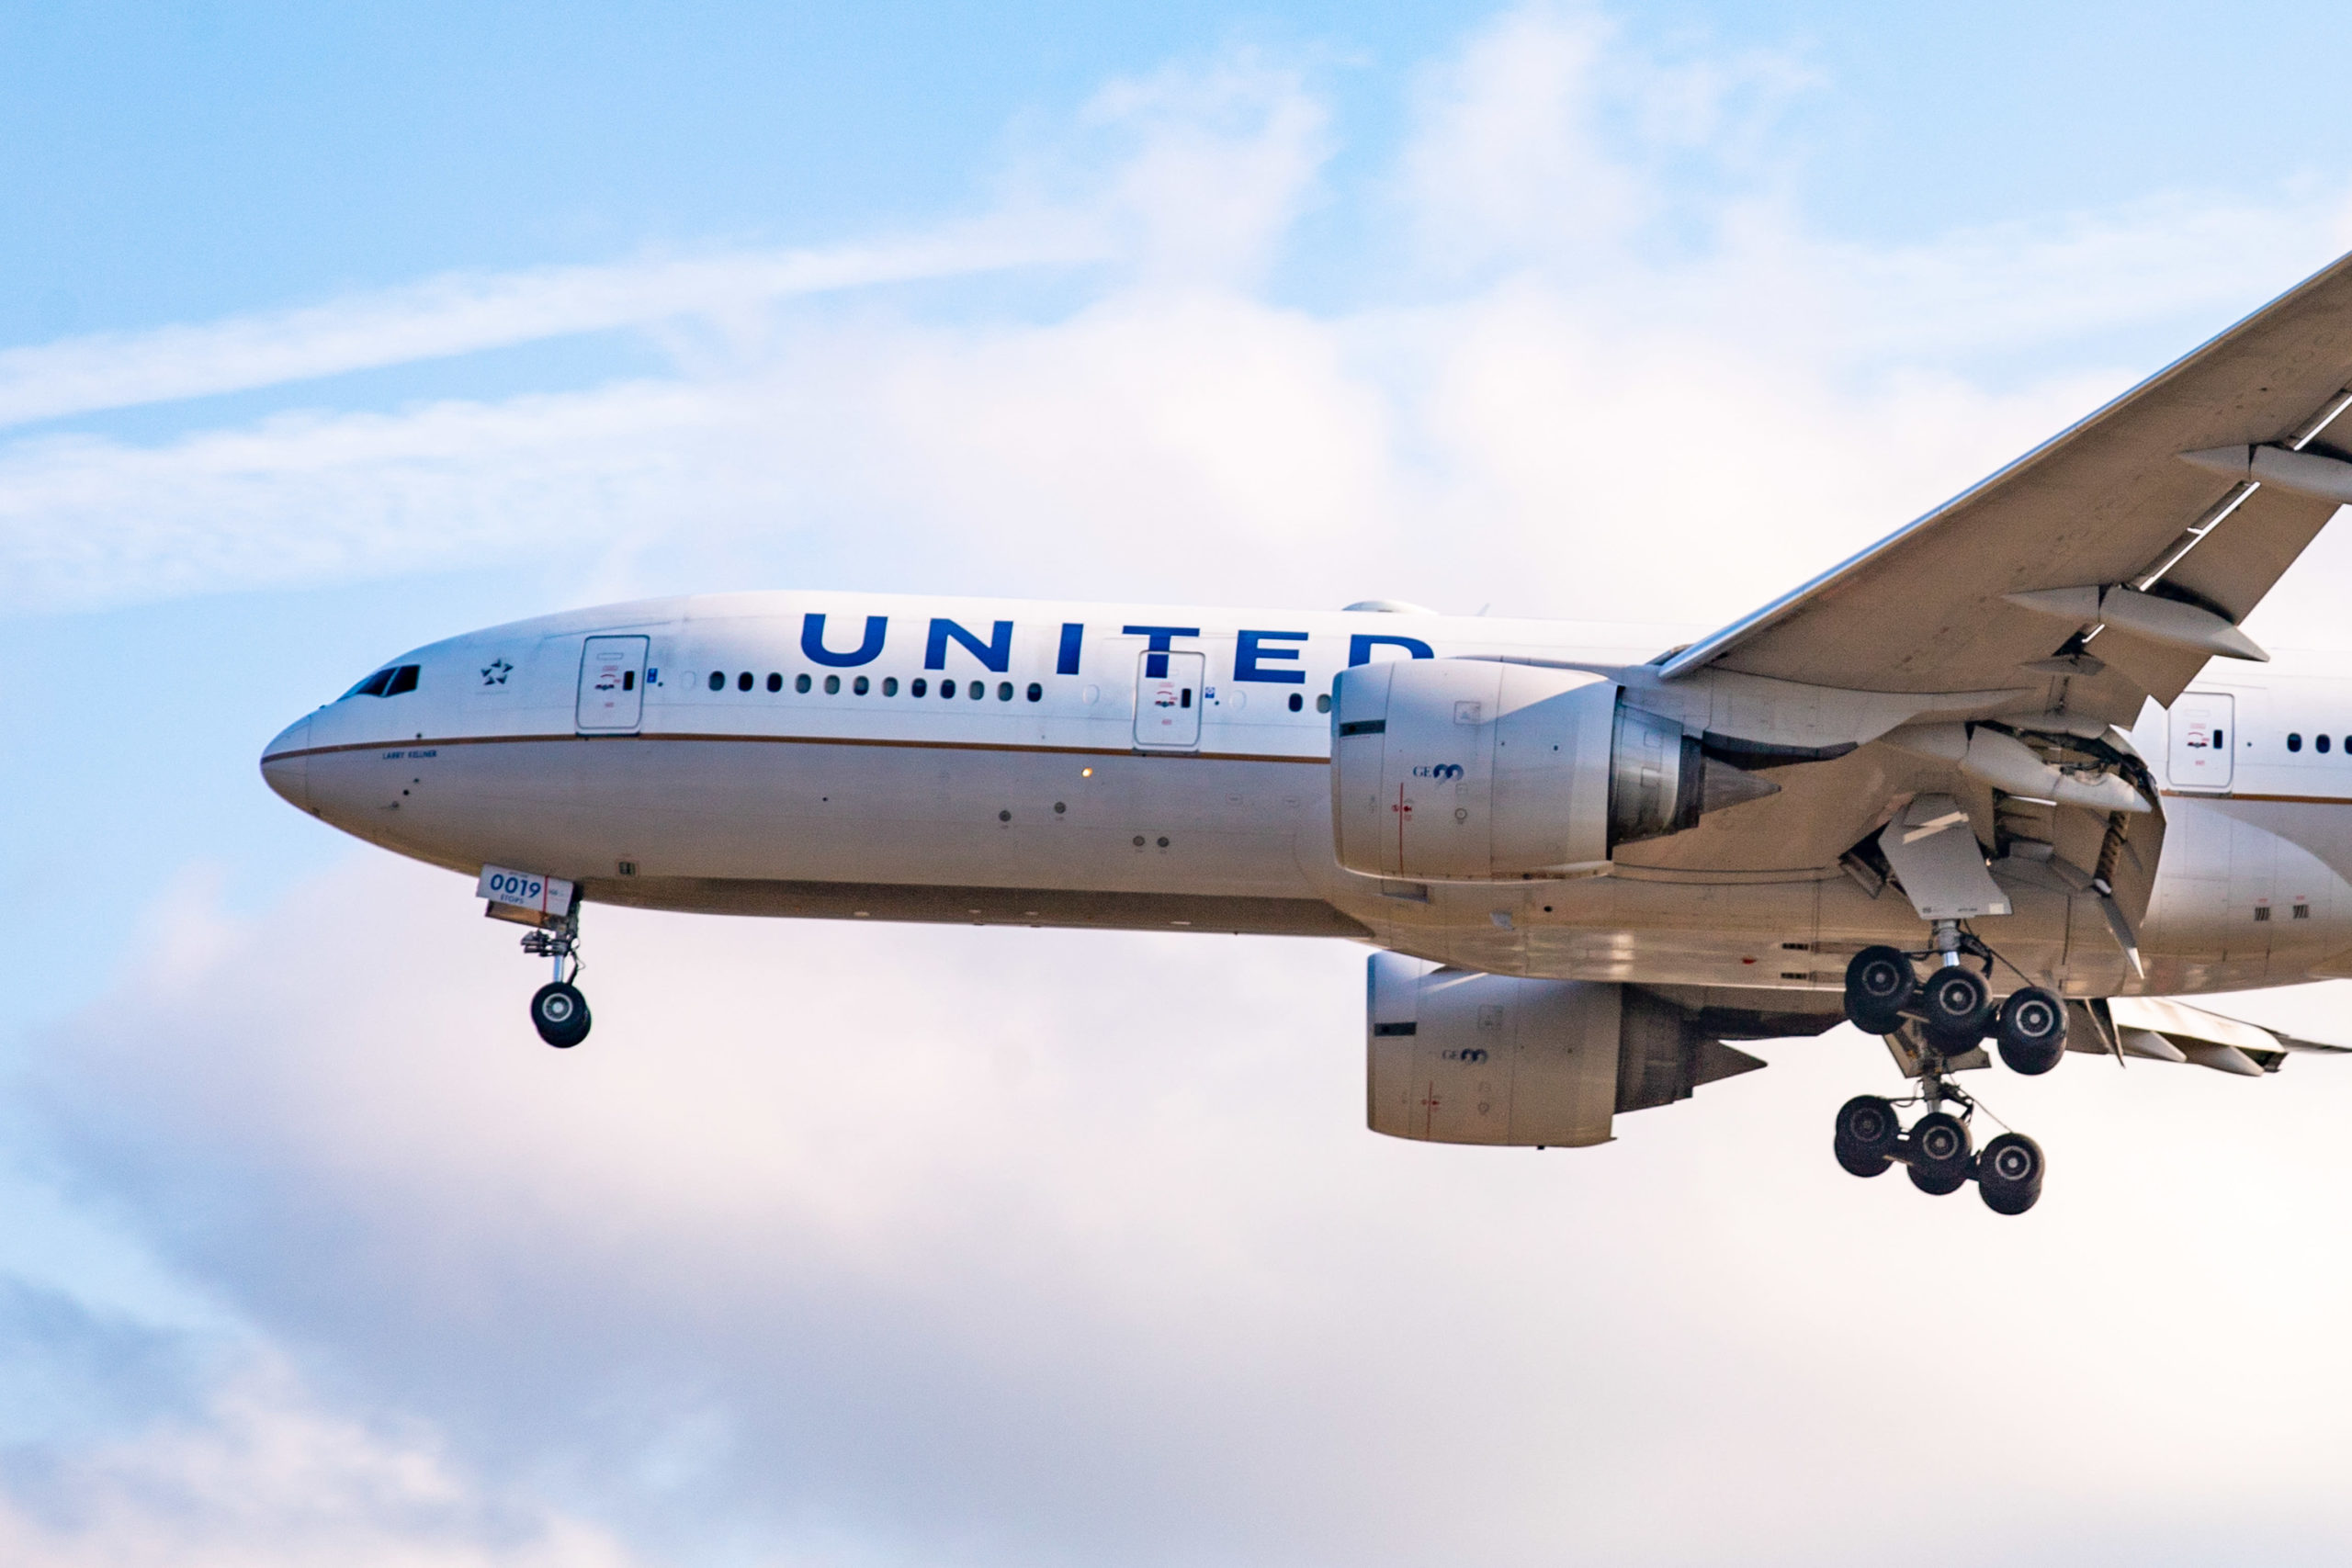 United, pilots union attain agreements for early retirements and voluntary furloughs